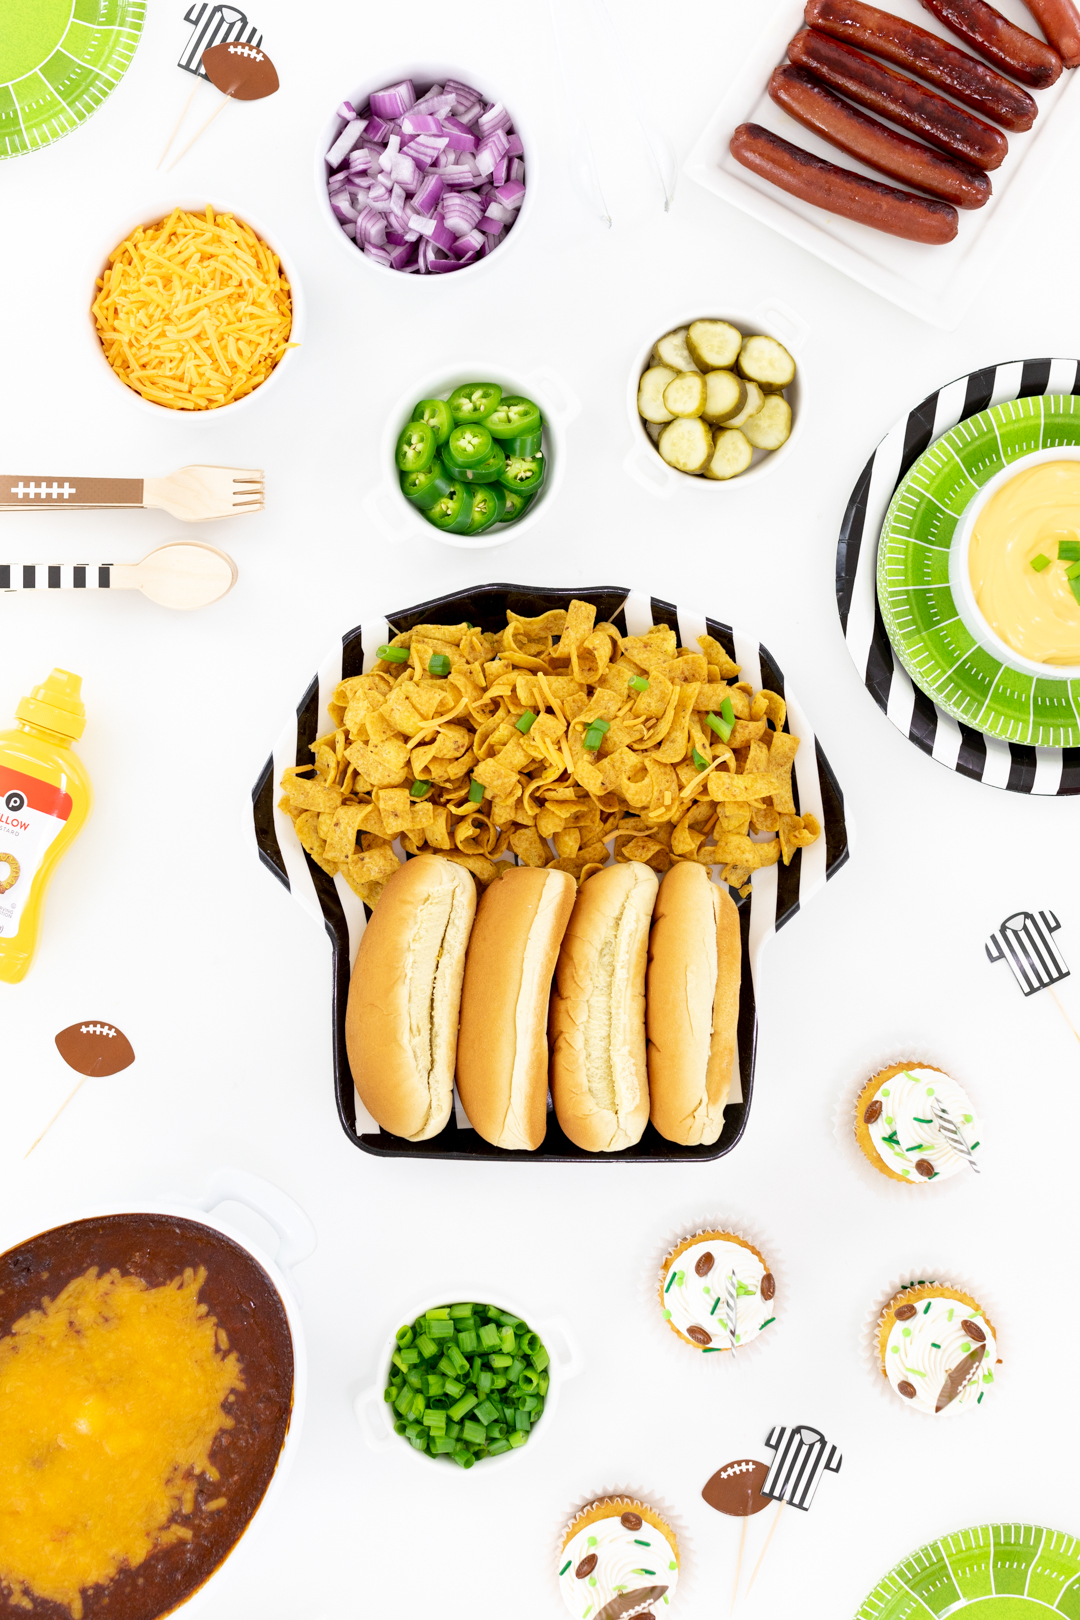 football party table with chili dog fixings